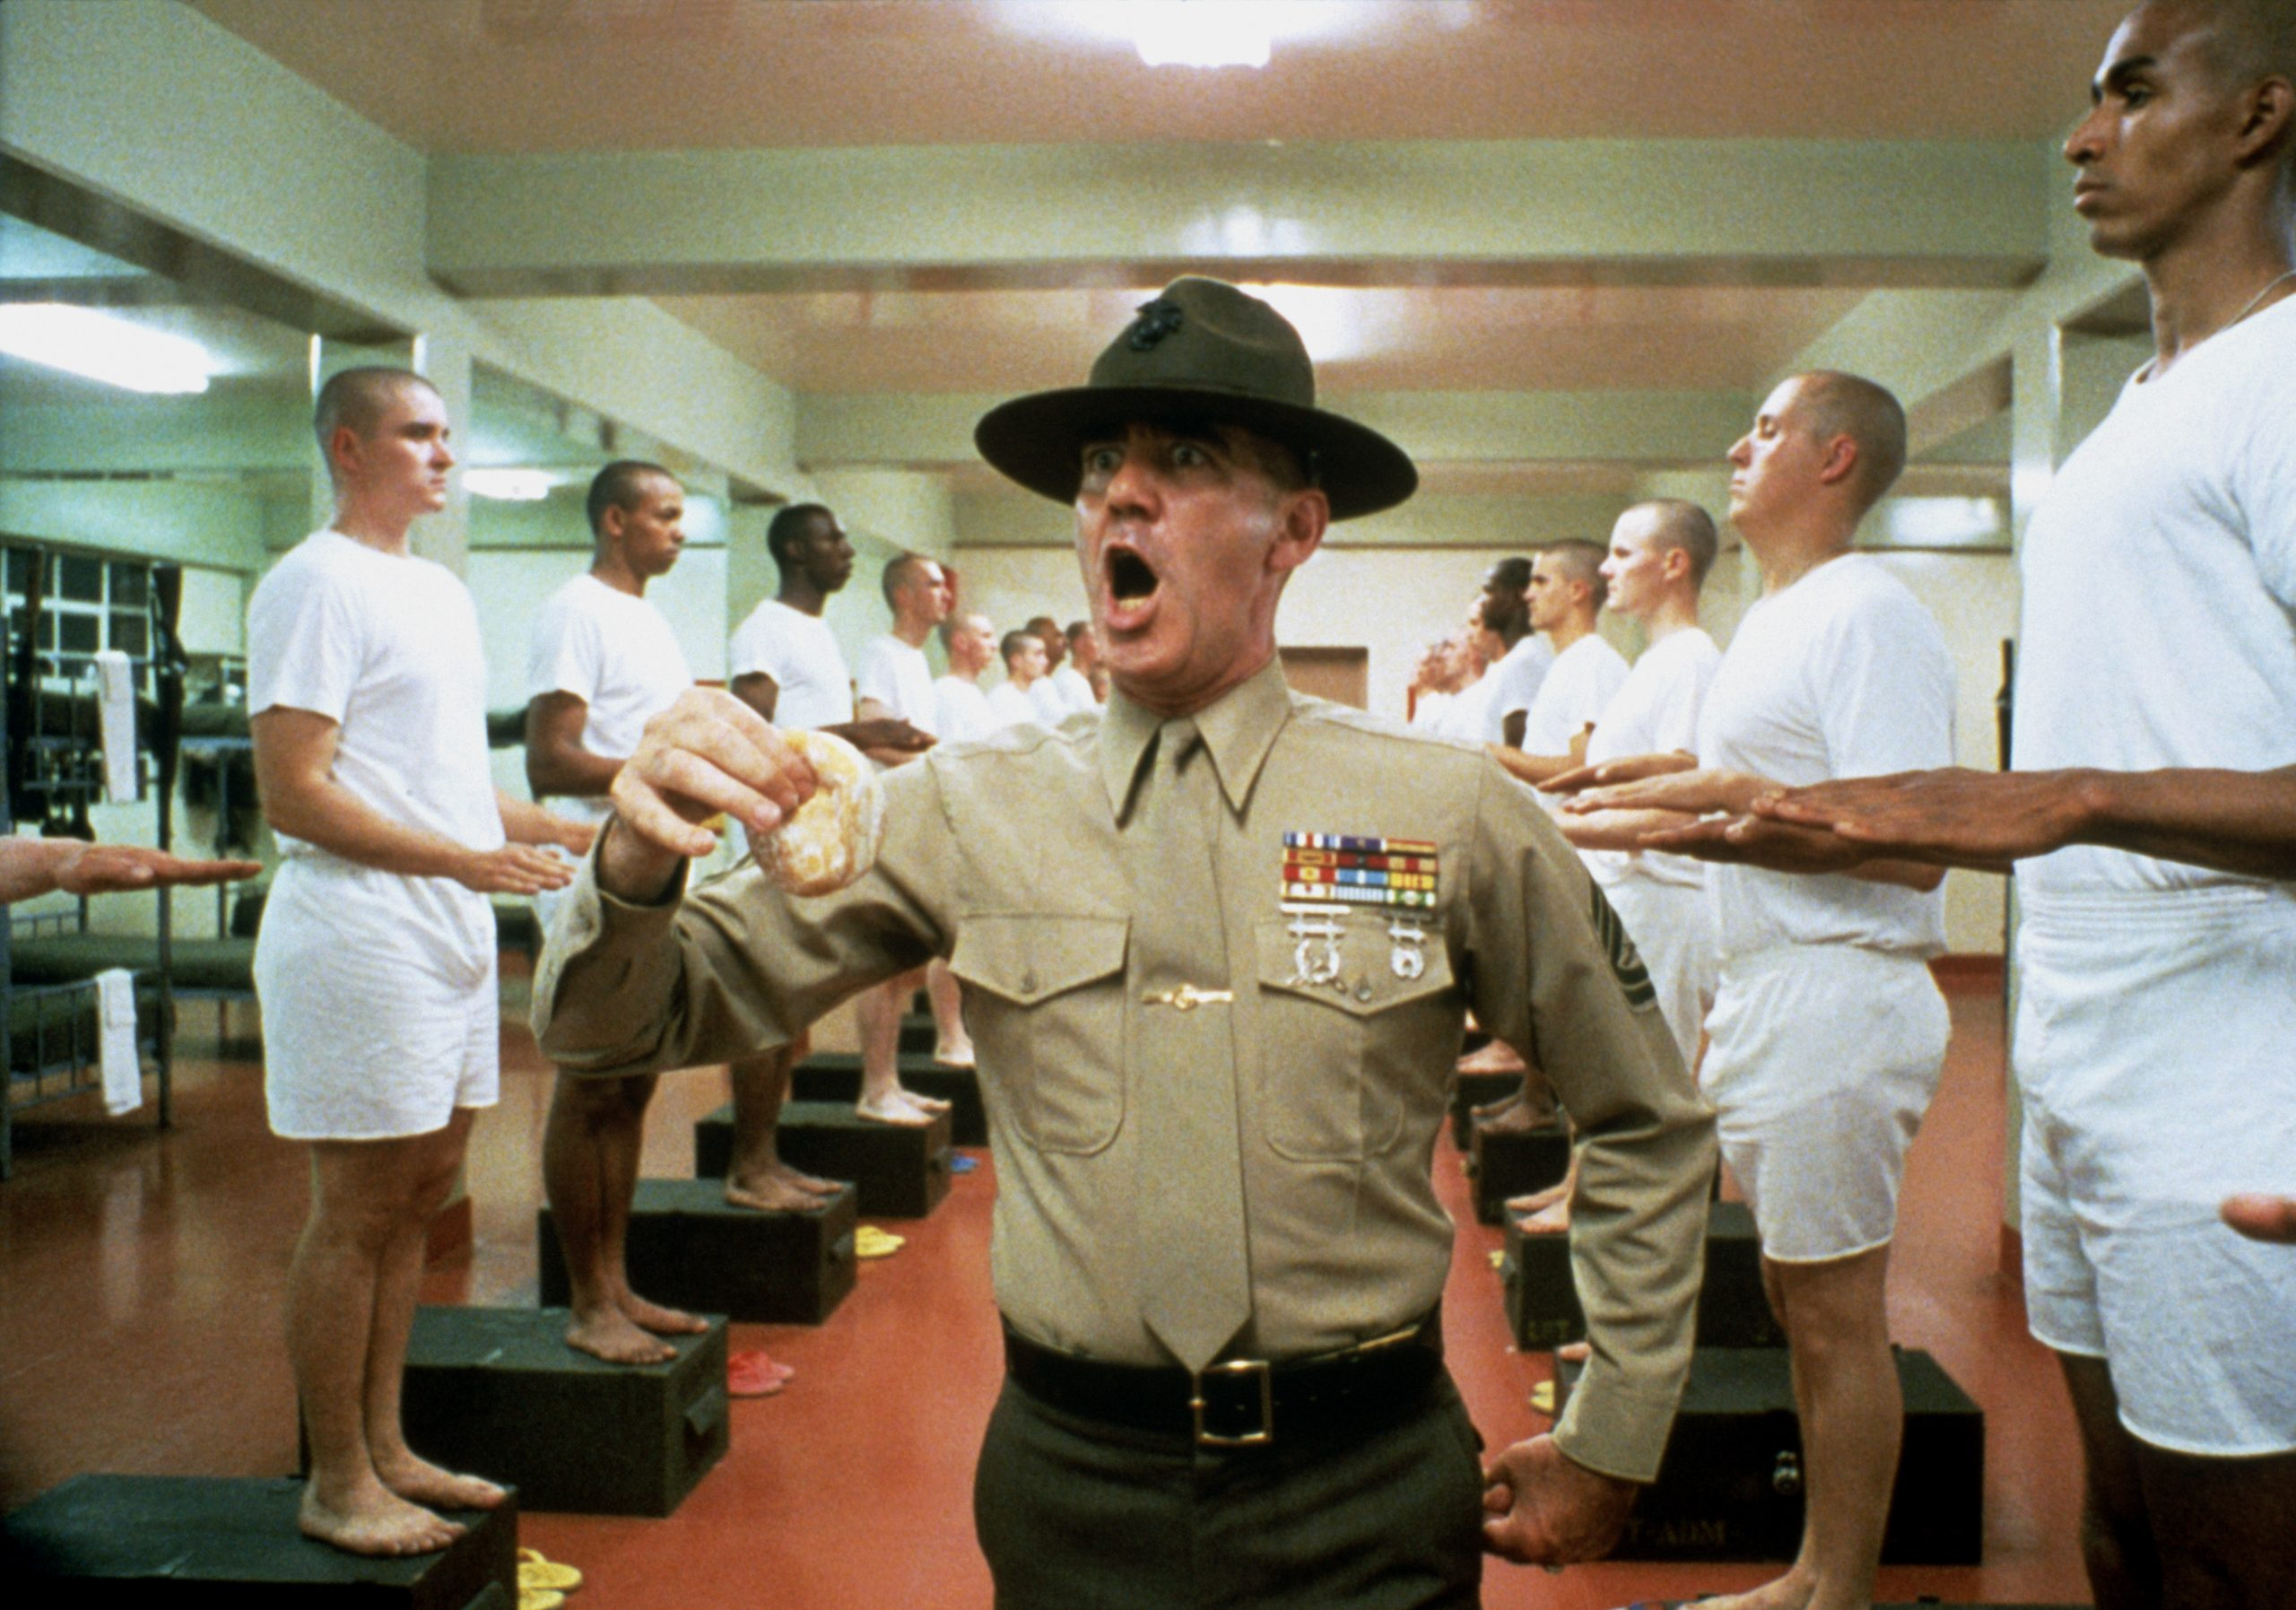 Gny. Stg. Hartman (Lee Ermey) harangues platoon members in the barracks